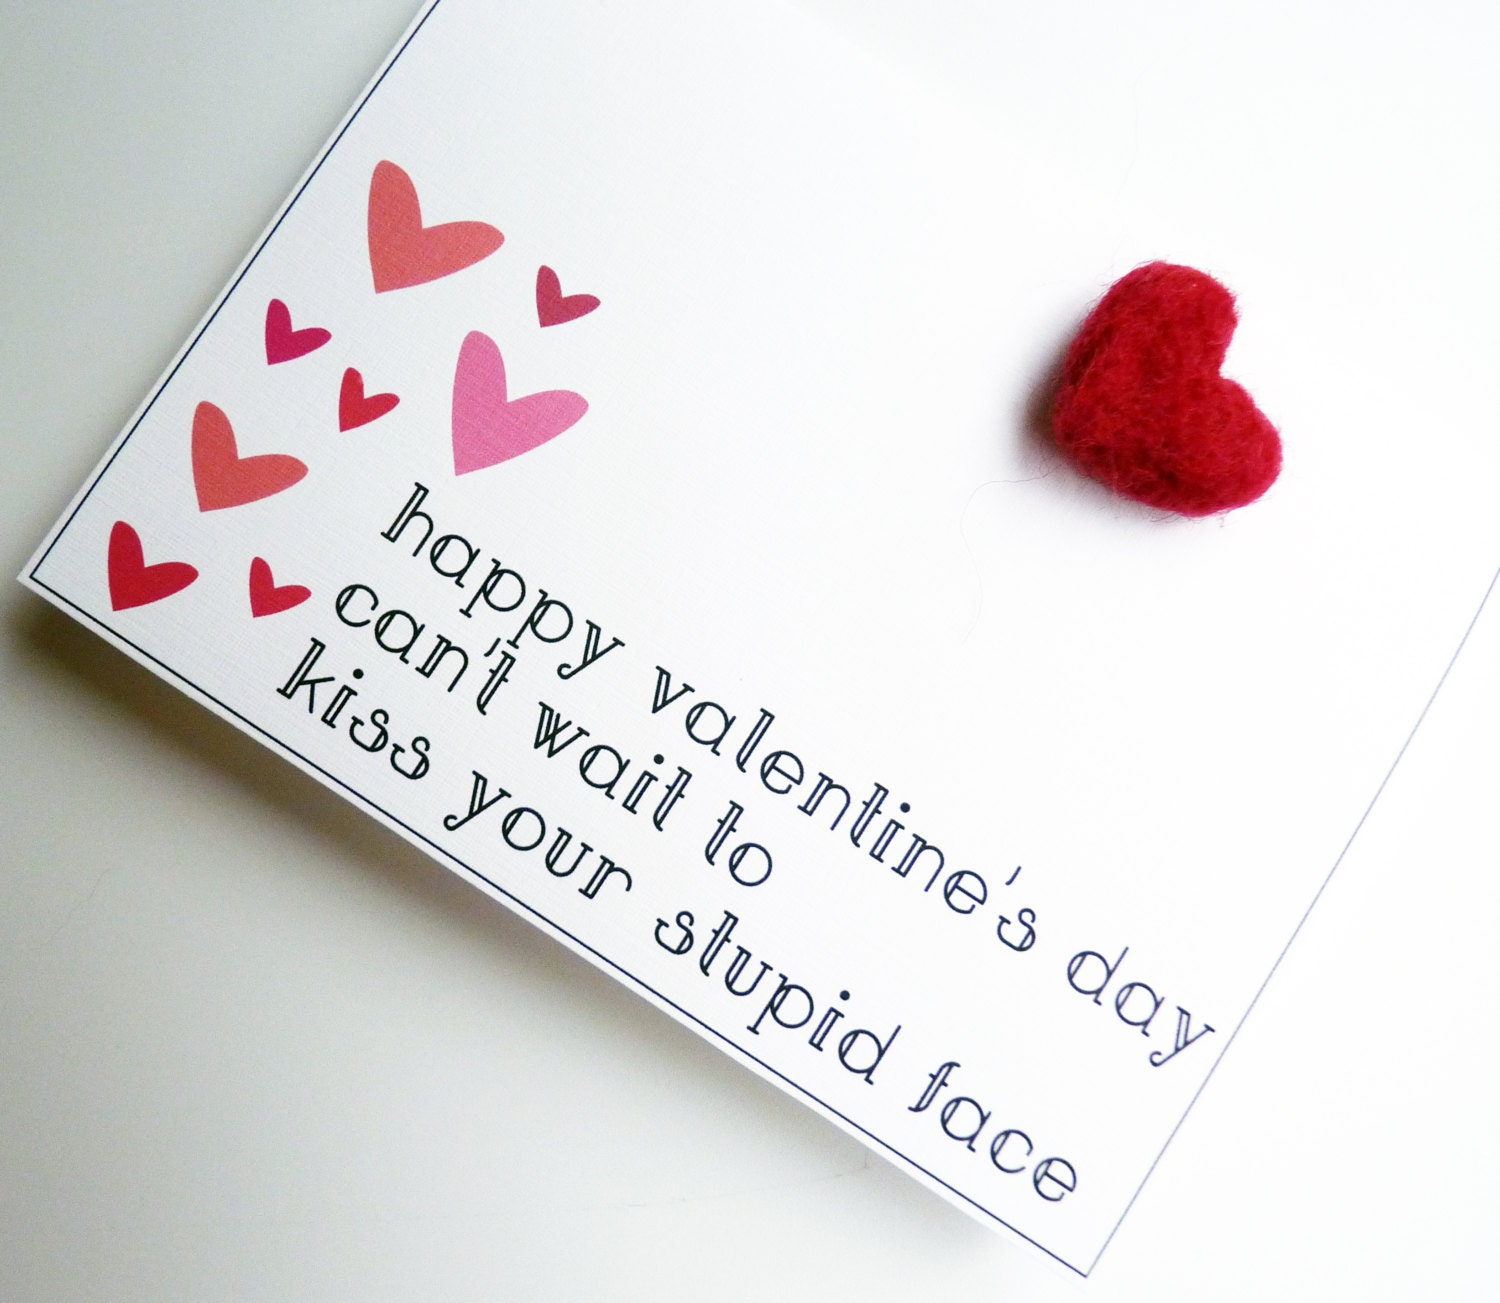 Happy Valentine's Day Can't Wait to Kiss Your Stupid Face - Pink & Red Heart Valentine's Sarcastic Funny Greeting Card